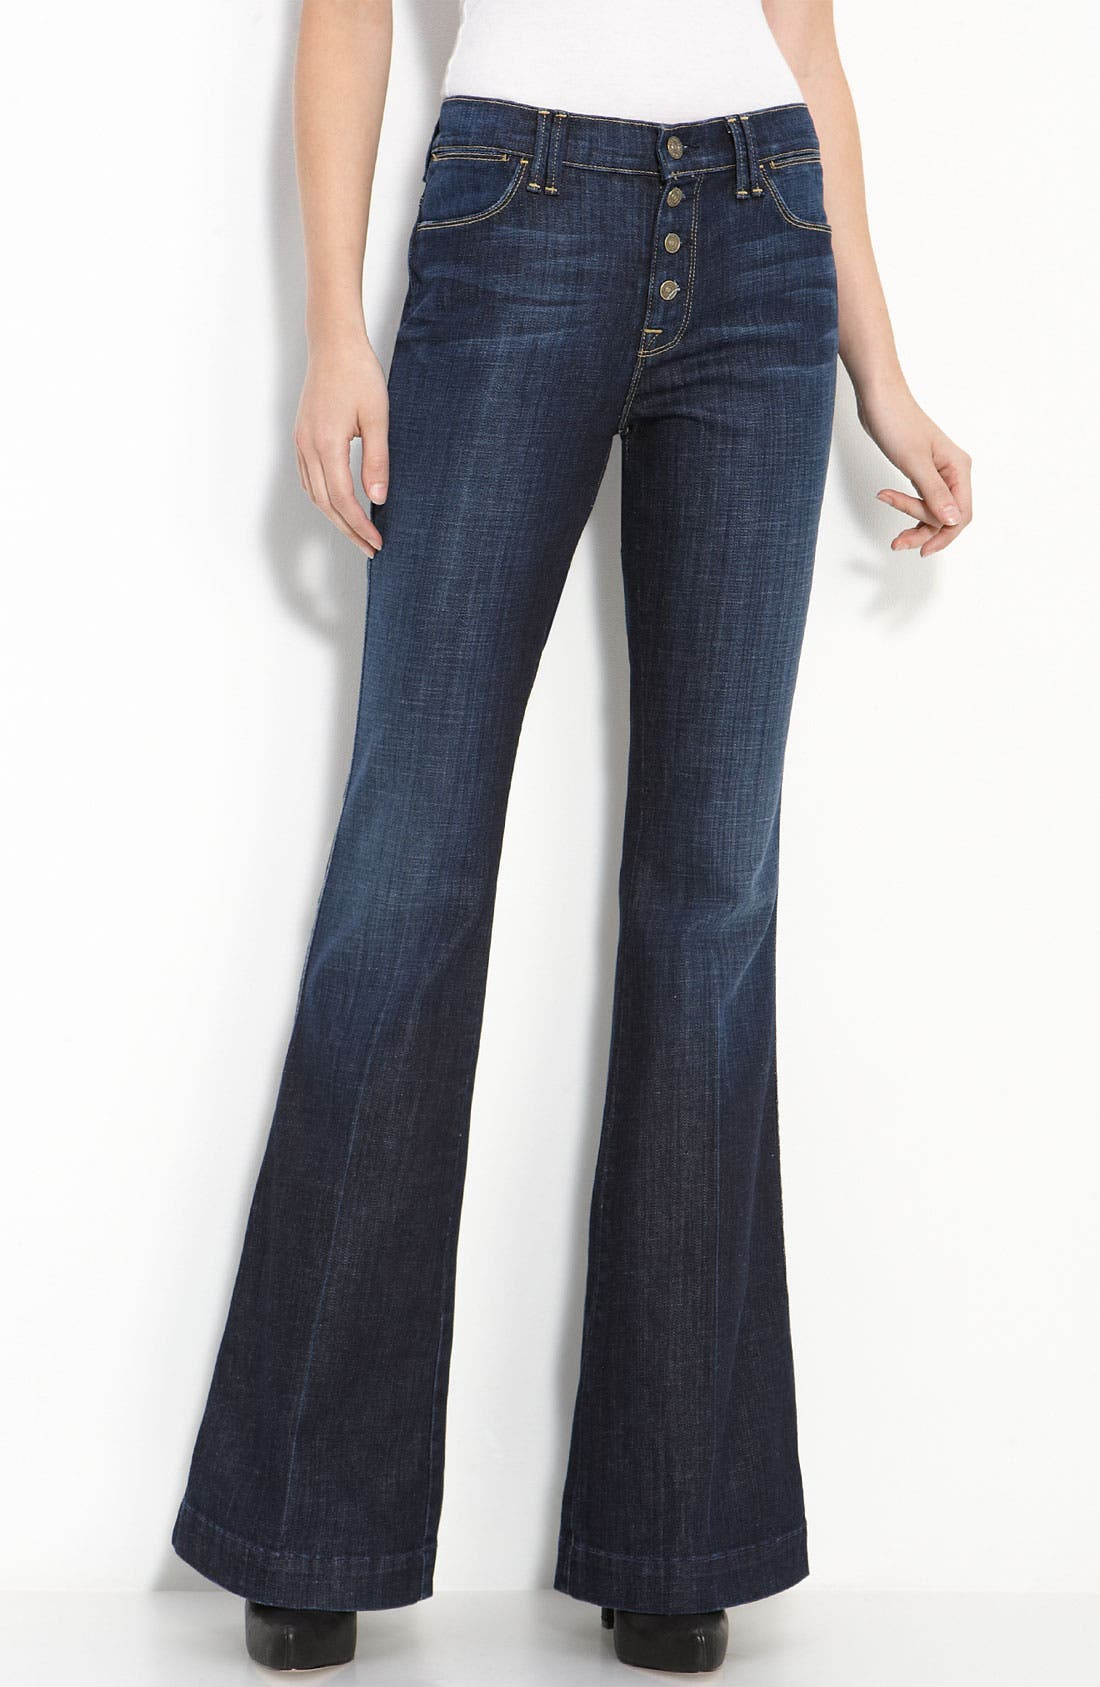 Alternate Image 1 Selected - 7 For All Mankind® 'Bianca' Flare Leg Stretch Jeans (Los Angeles Dark Wash)